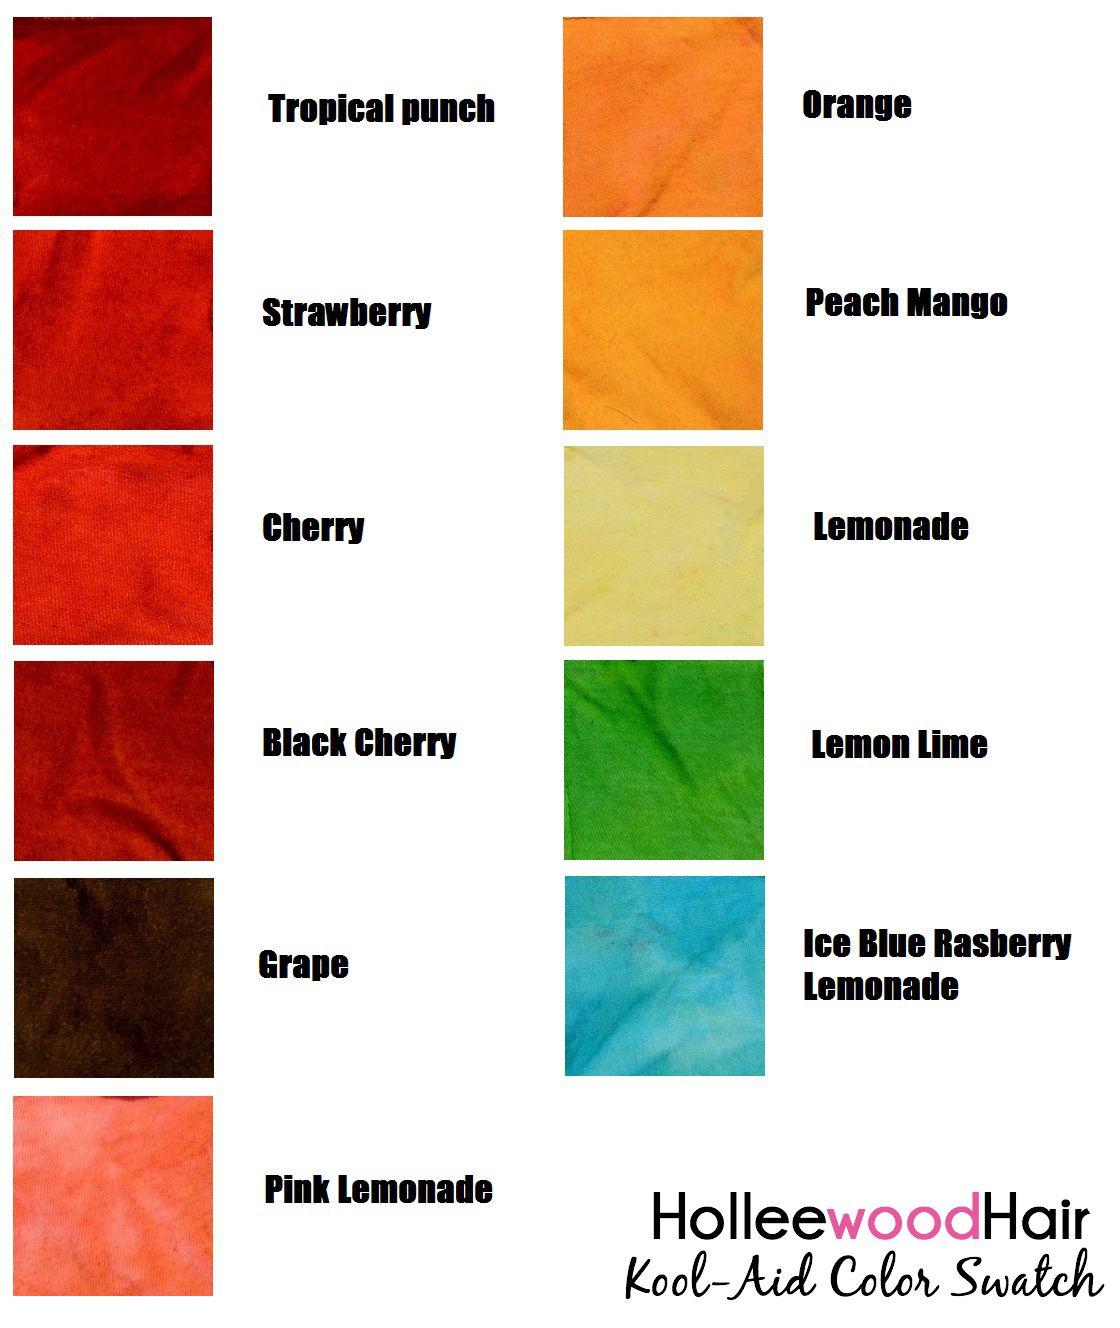 Kool Aid Hair Color 2020 Guide How To Dye Your Hair With Kool Aid Kool Aid Hair Kool Aid Hair Dye Hair Dye For Kids